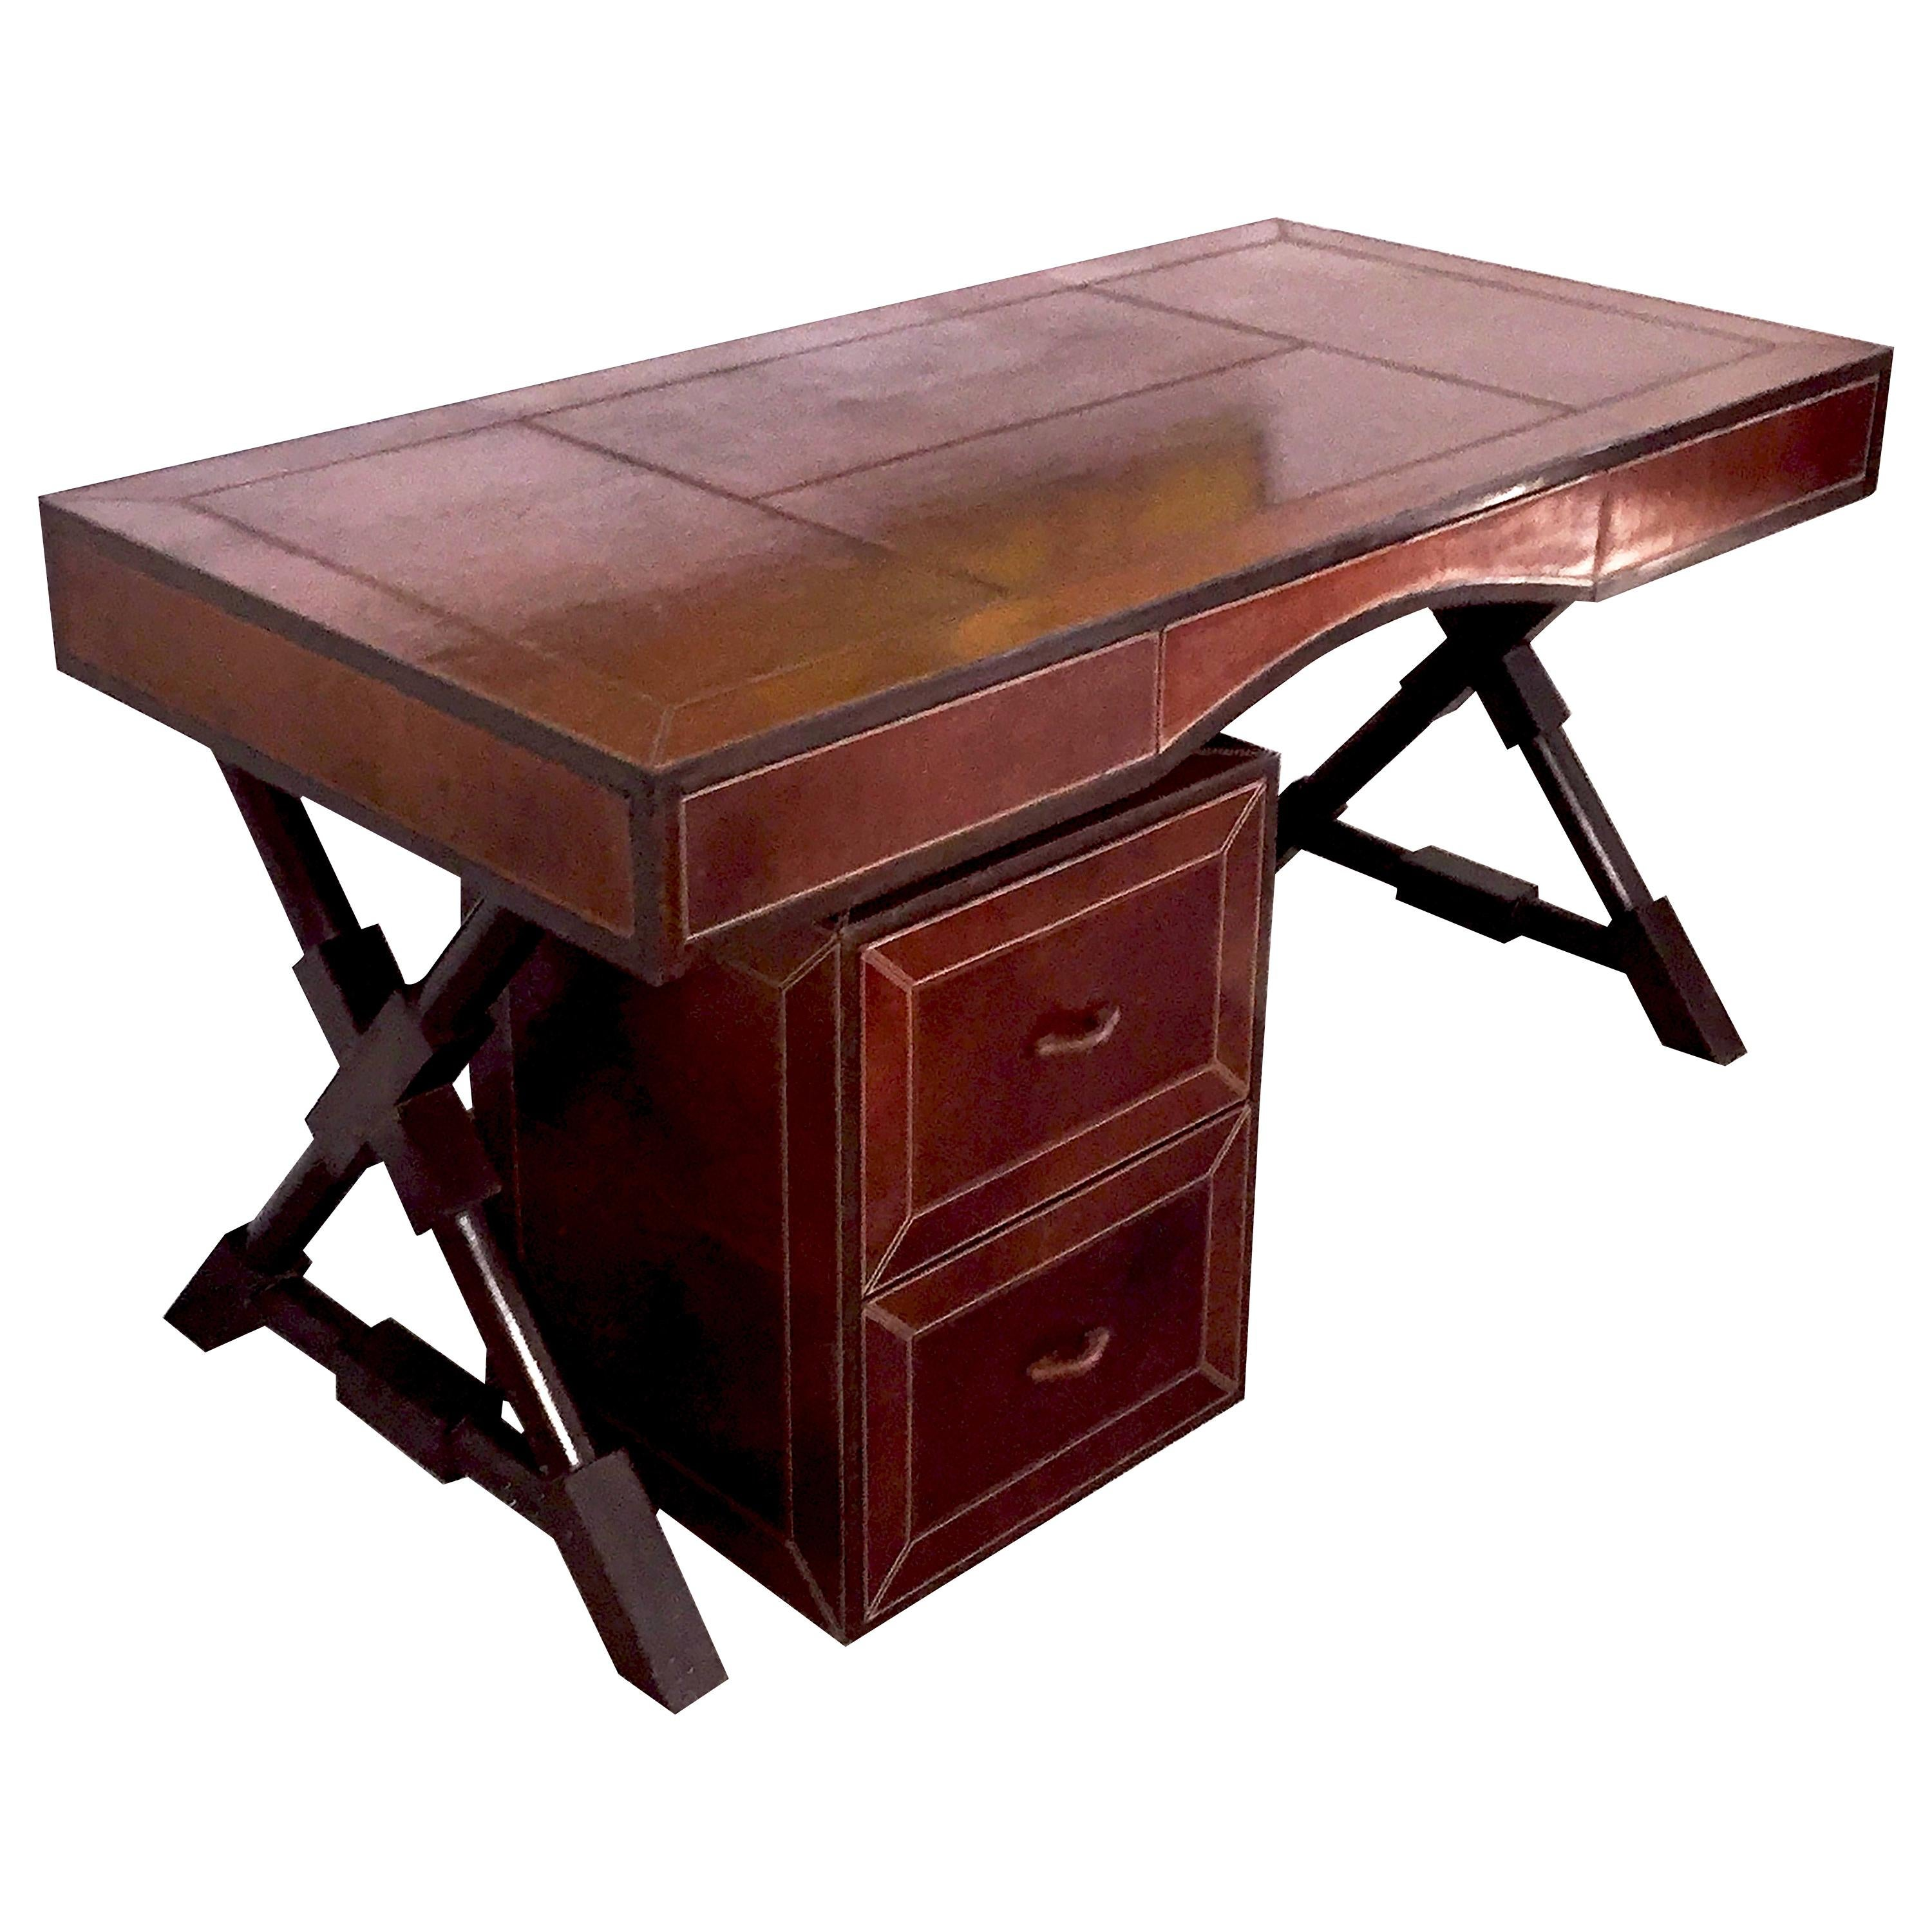 Tawny Color Leather X-Shaped Wood Base Desk in the Style of J. Adnet, circa 1980